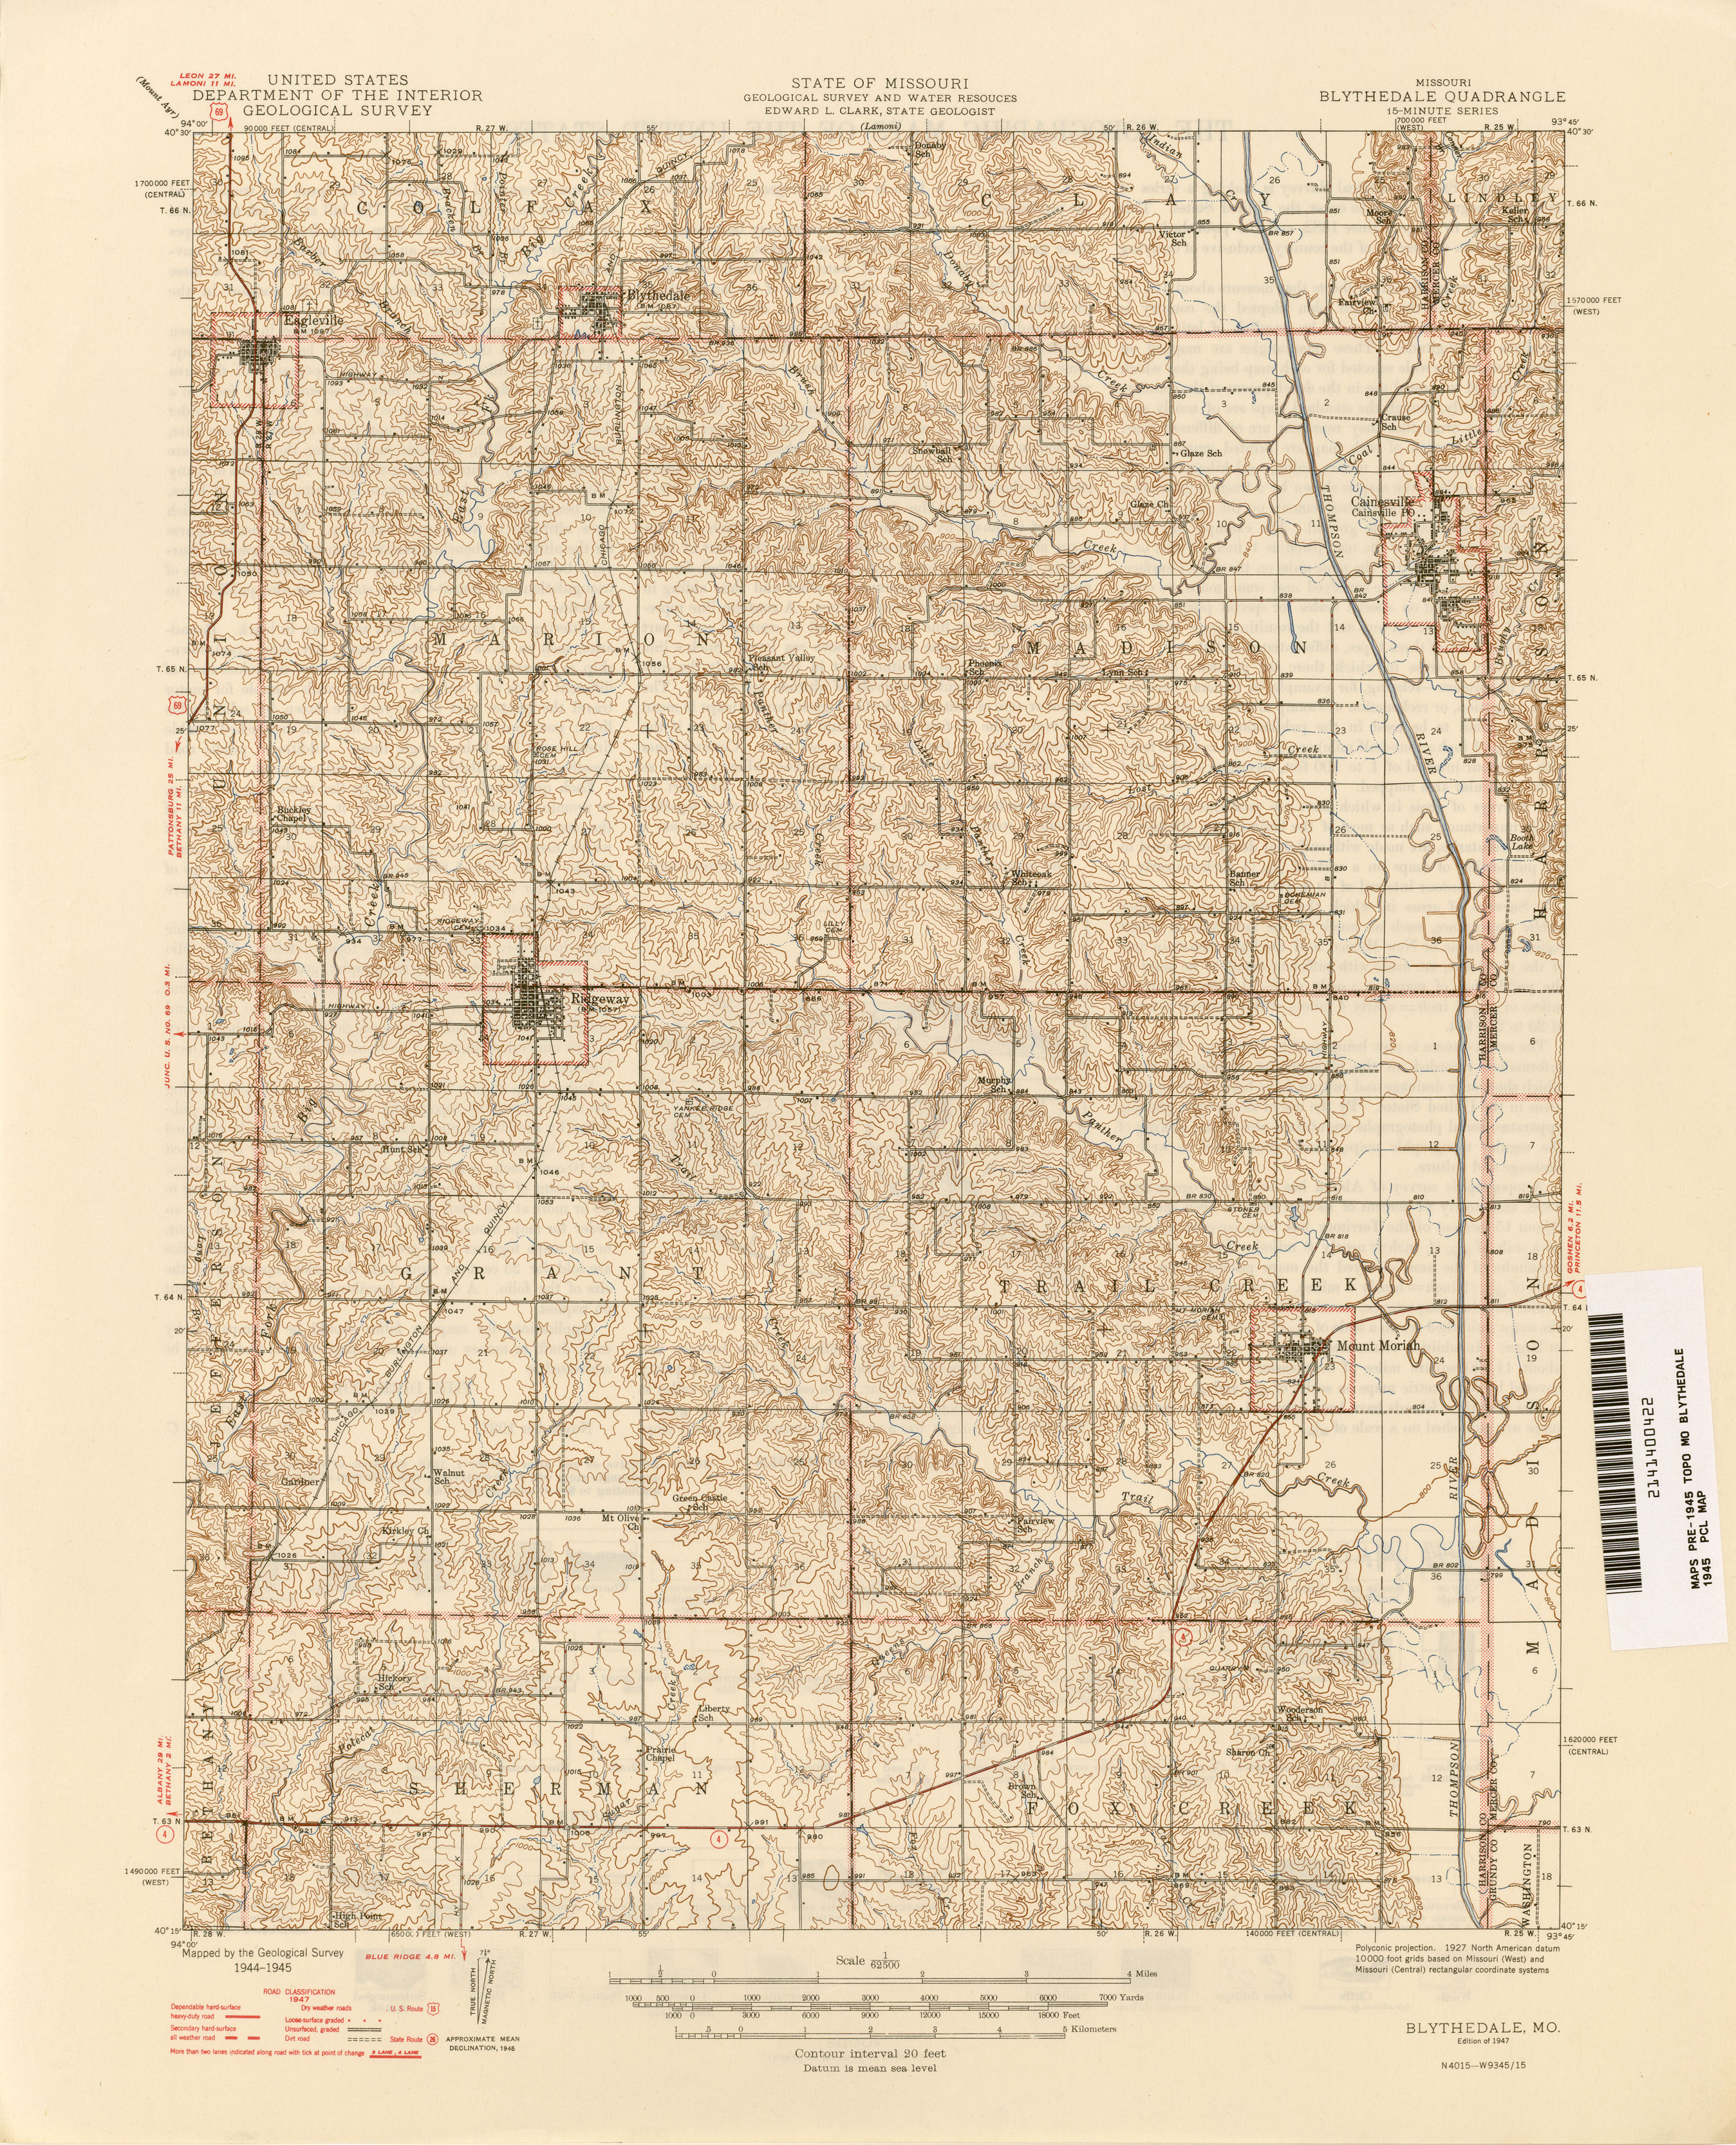 Missouri Historical Topographic Maps - Perry-Castañeda Map ... on map of jackson vt, map of jackson state, map of jackson sc, map of michigan, map of jackson nj, map of king of prussia pa, map of jackson mt, map of jackson california, map of jean nv, map of jackson ga, map of jackson ohio, map of jackson fl, map of jackson tenn, map of jackson tn, map of jackson montana, map of jackson ca, map of jackson wy, map of jackson georgia, map of jackson mississippi, map of downtown jackson wyoming,